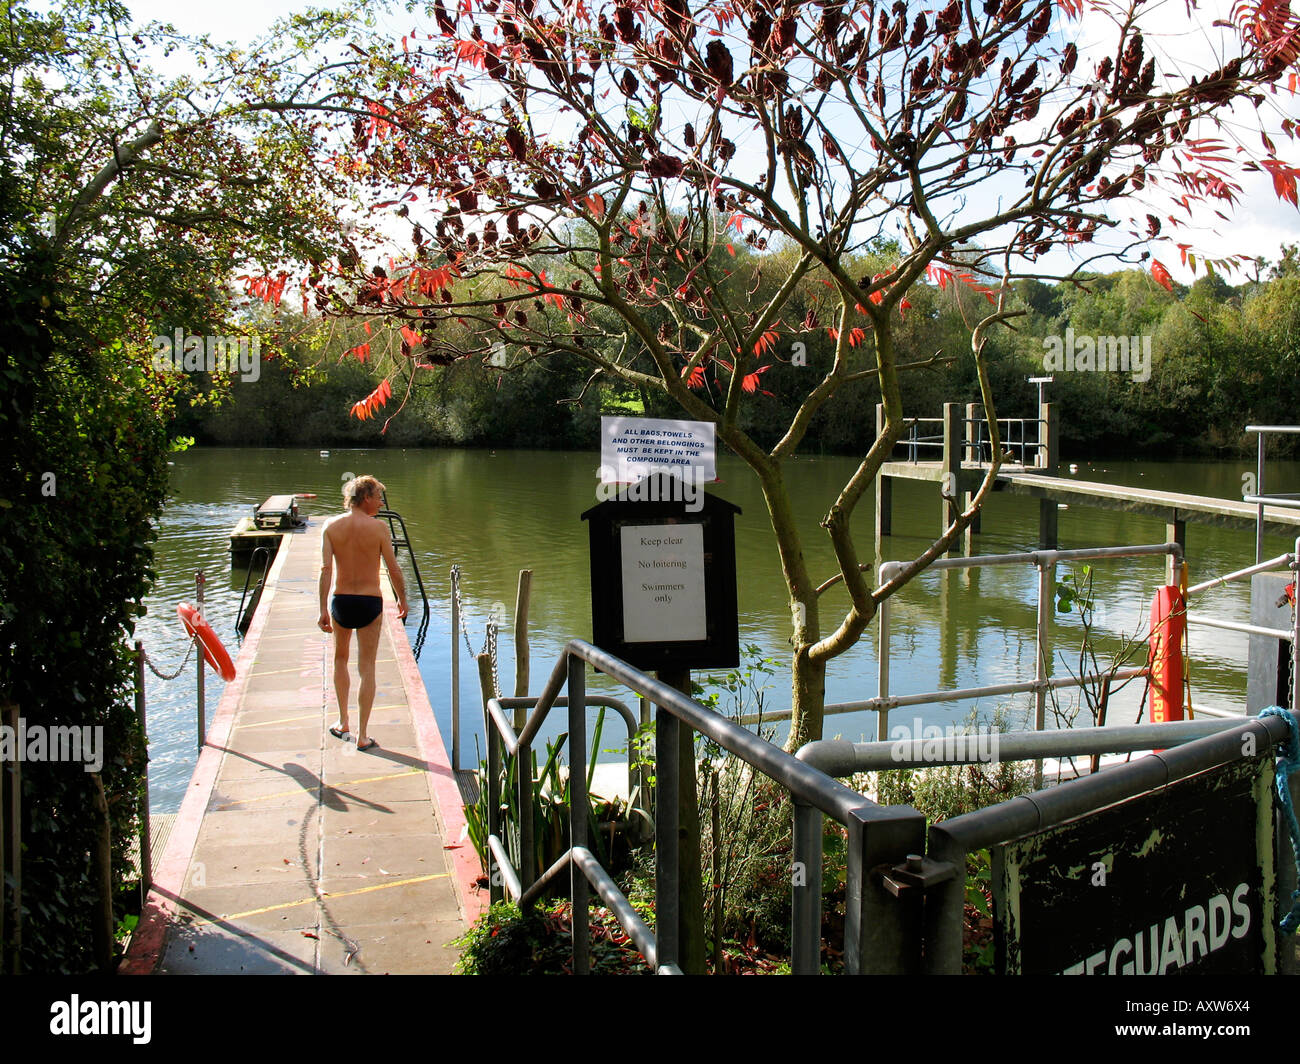 A Man At The Mens Swimming Pond On Hampstead Heath London England Stock Photo Royalty Free